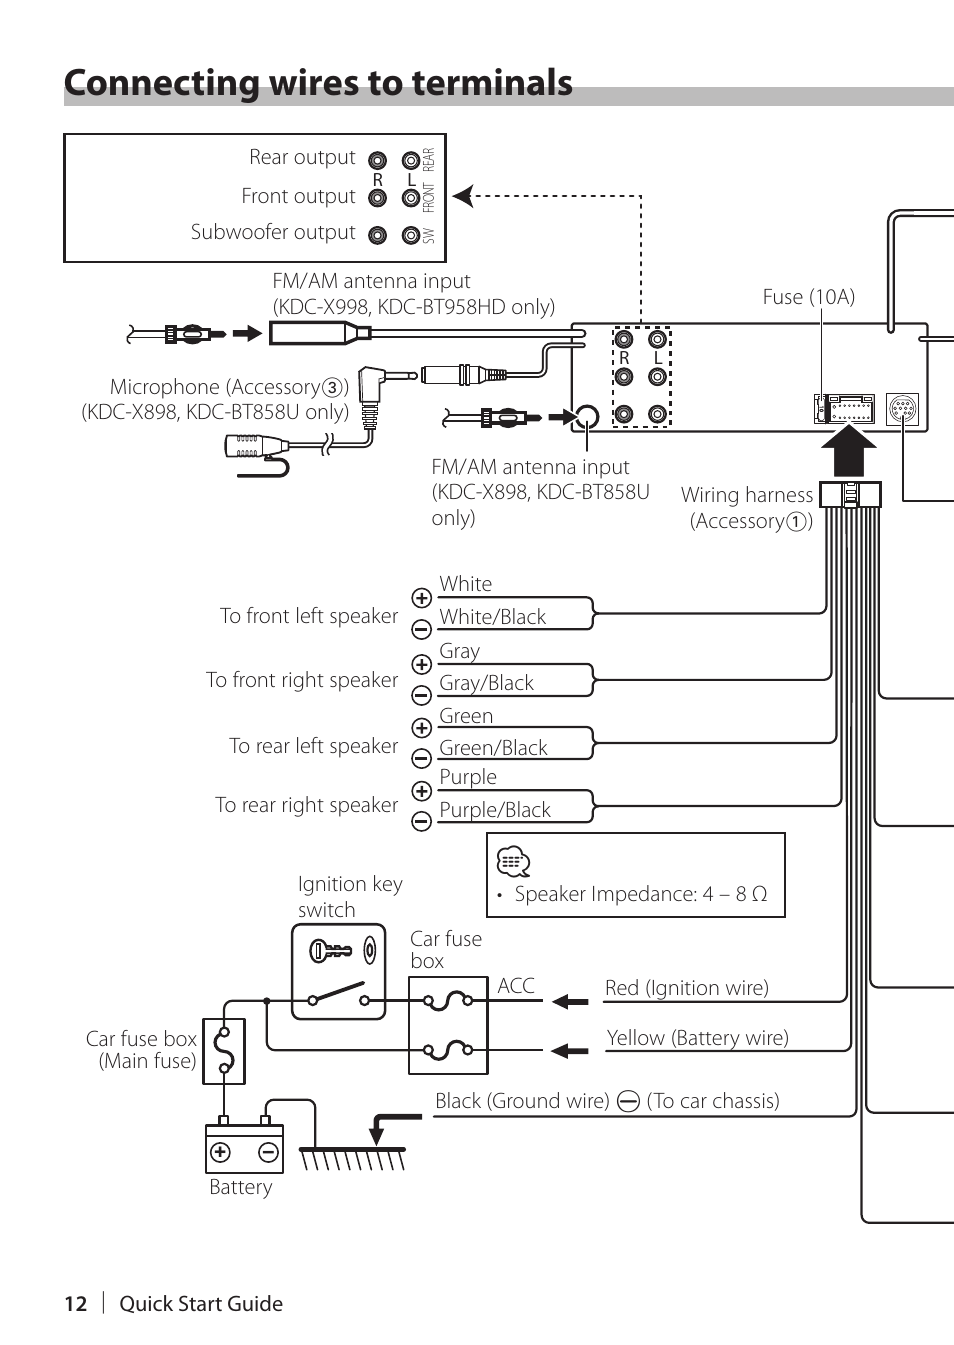 [XOTG_4463]  Kenwood Dnx Wire Diagram 2002 Malibu Fuel Pump Wiring Diagram -  vwc.astrea-construction.fr | Kenwood Kvt 512 22 Pin Wiring Diagram |  | Begeboy Wiring Diagram Source - ASTREA CONSTRUCTION